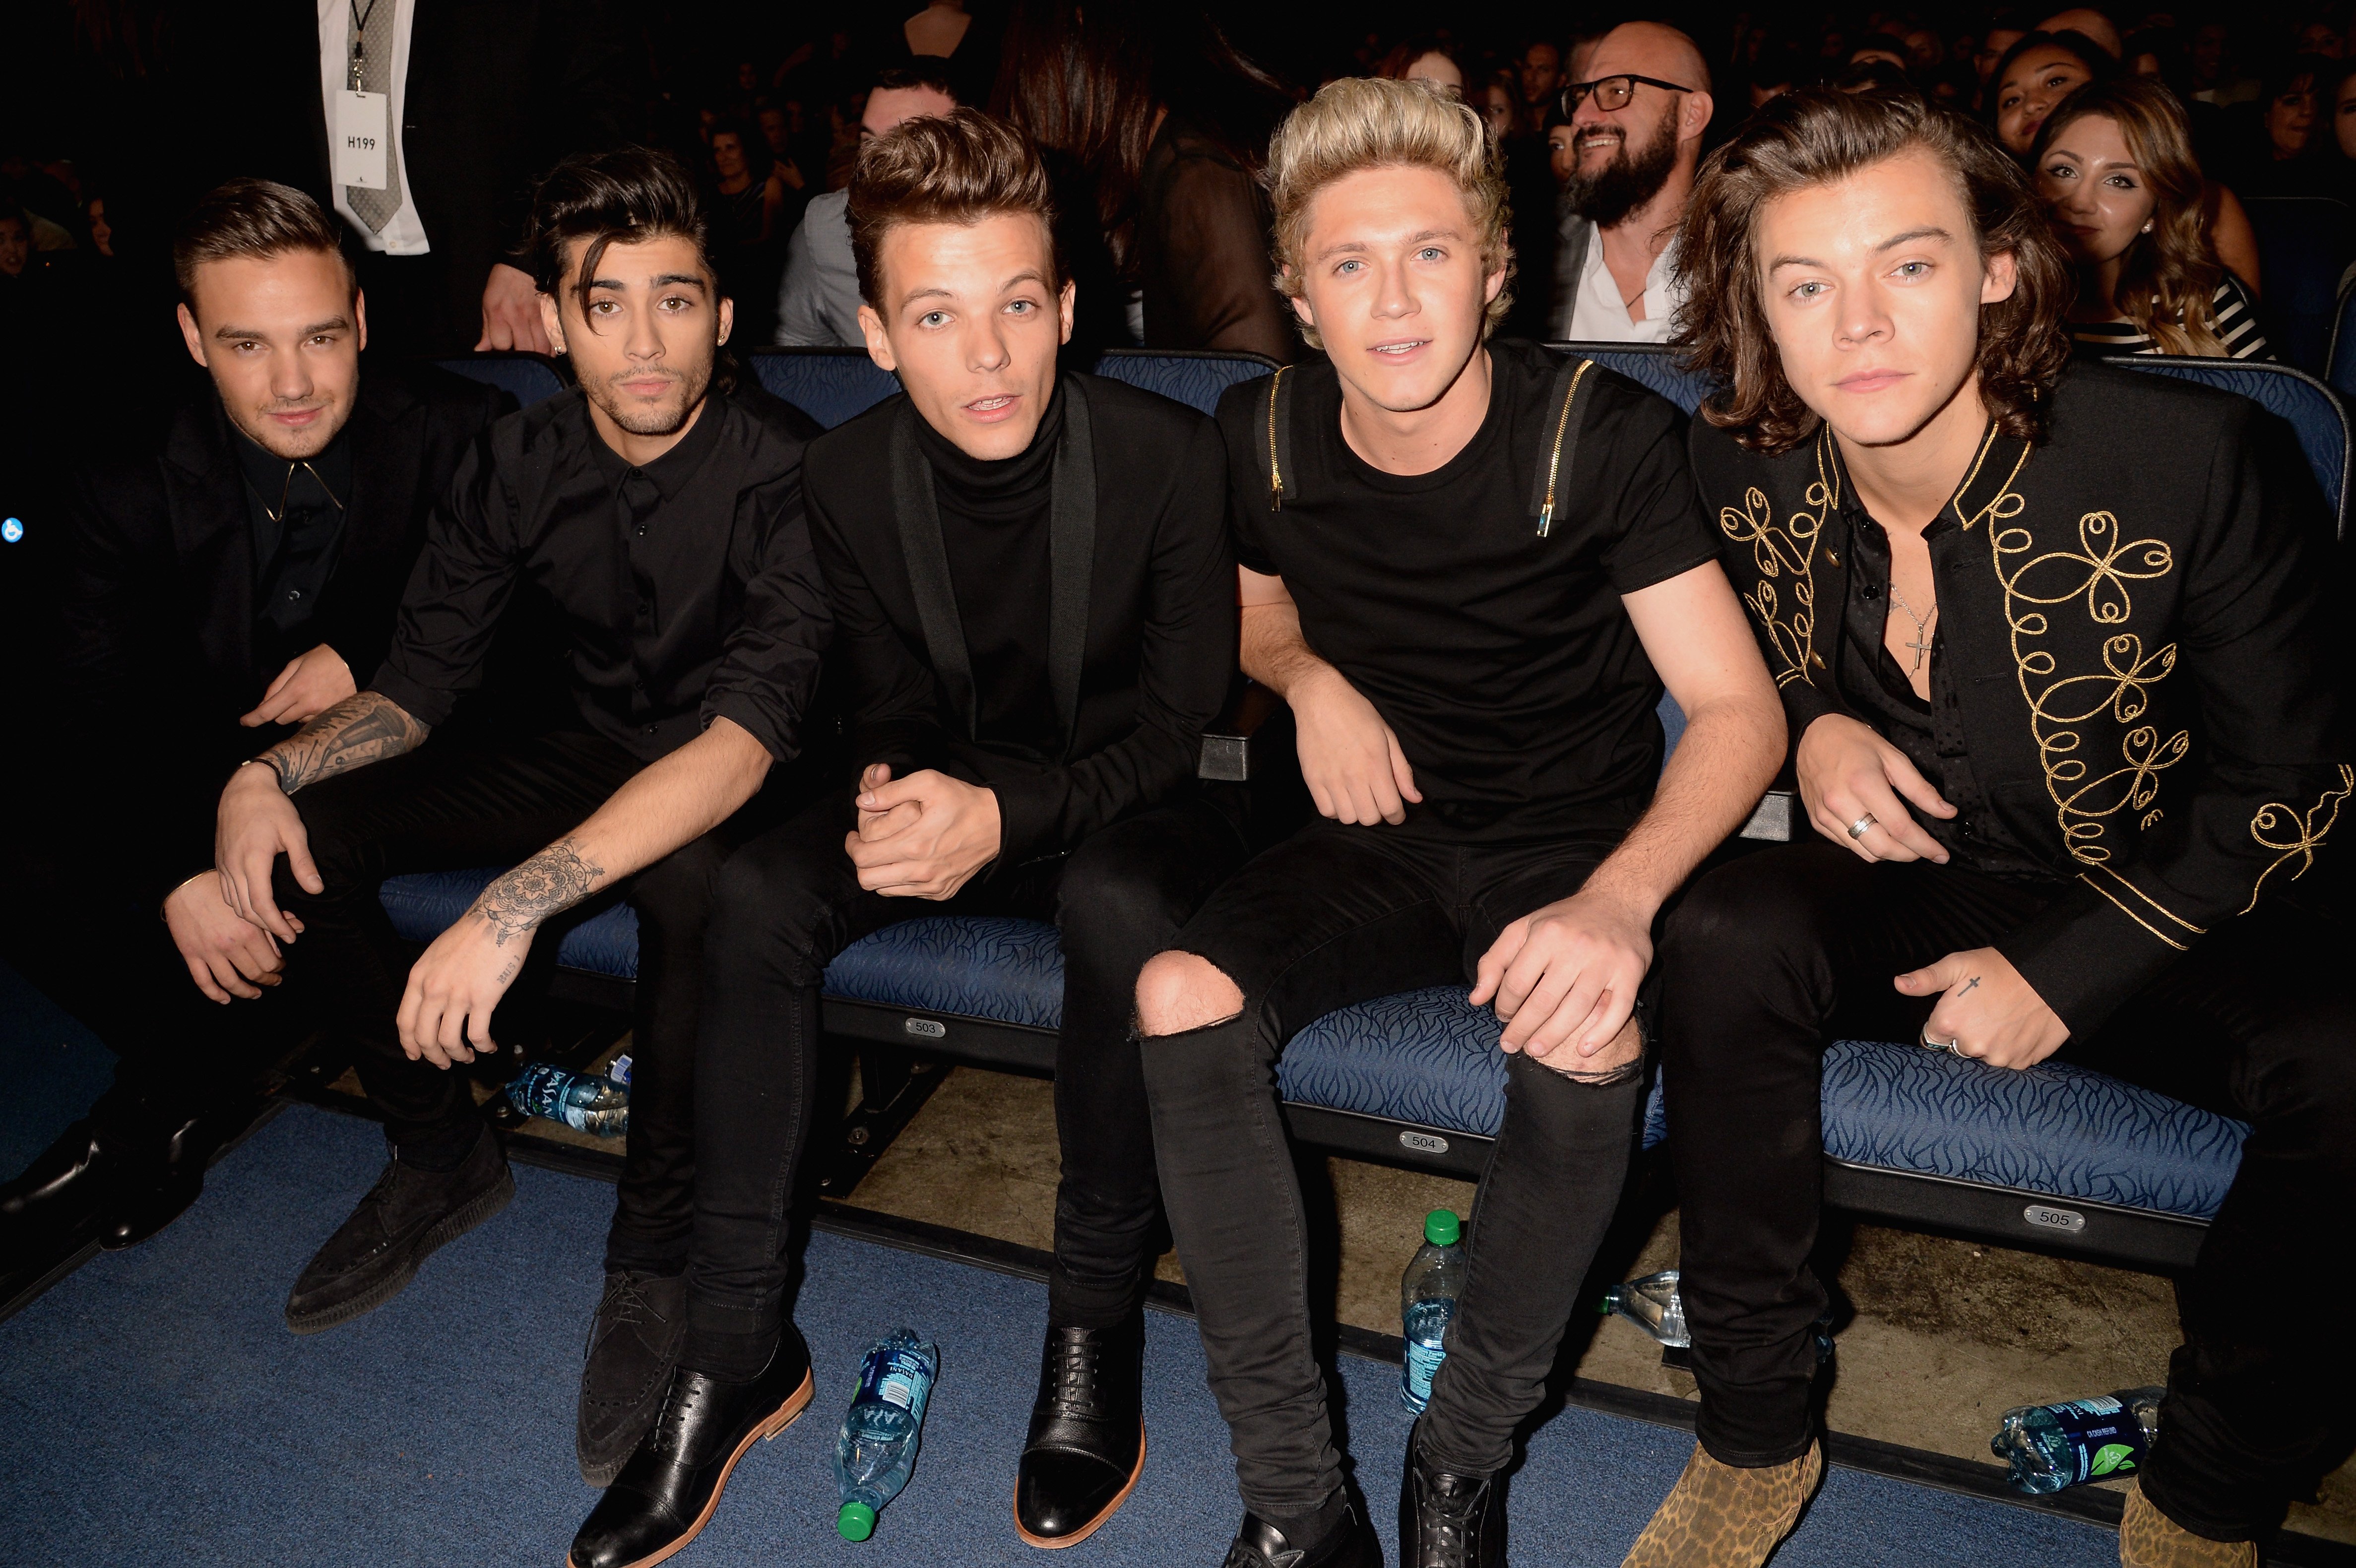 Liam Payne, Zayn Malik, Louis Tomlinson, Niall Horan, and Harry Styles of the music group One Direction all sitting on a bench at the 2014 American Music Awards in Los Angeles.